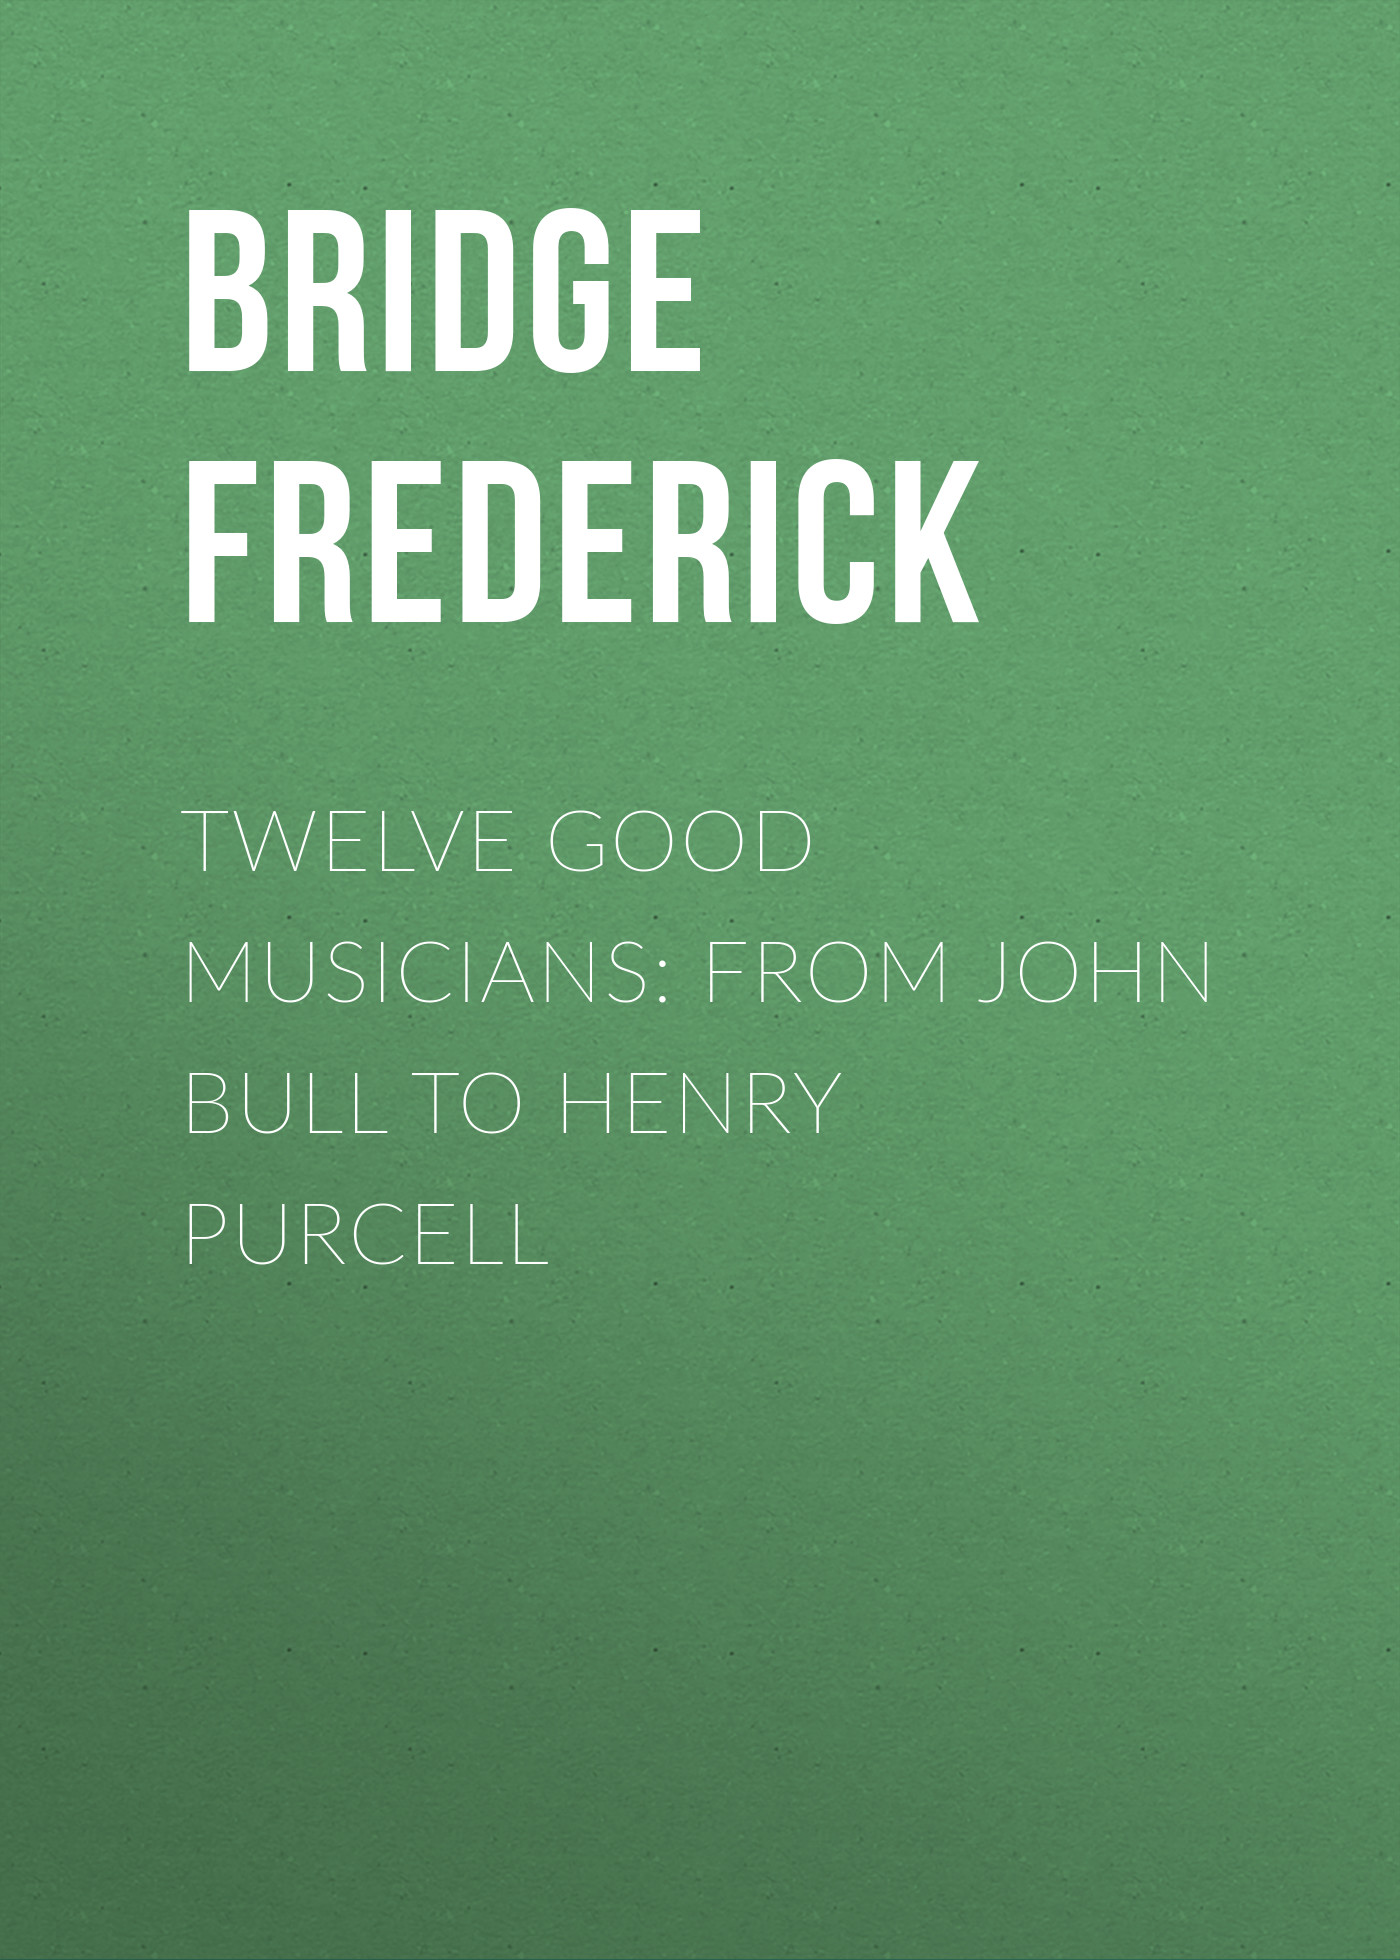 Bridge Frederick Twelve Good Musicians: From John Bull to Henry Purcell